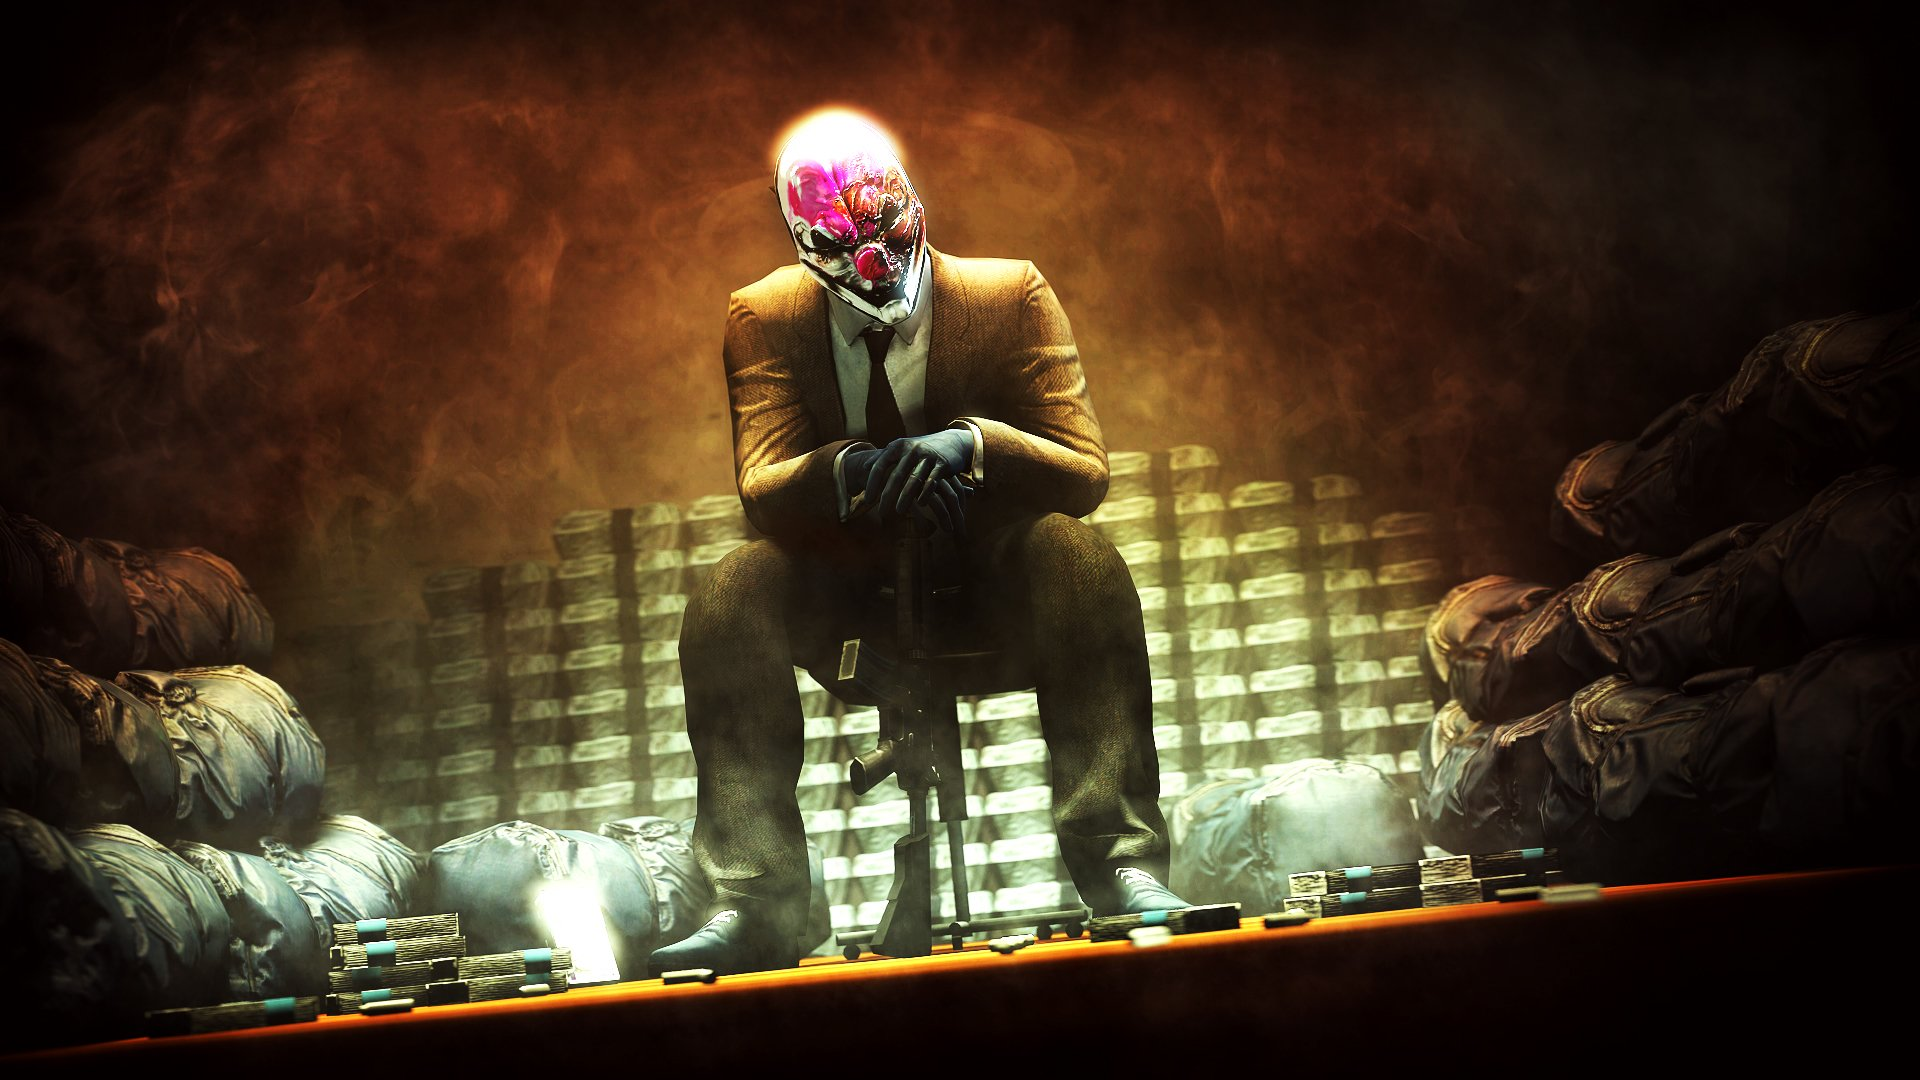 22 Hoxton Payday Hd Wallpapers Background Images Wallpaper Abyss